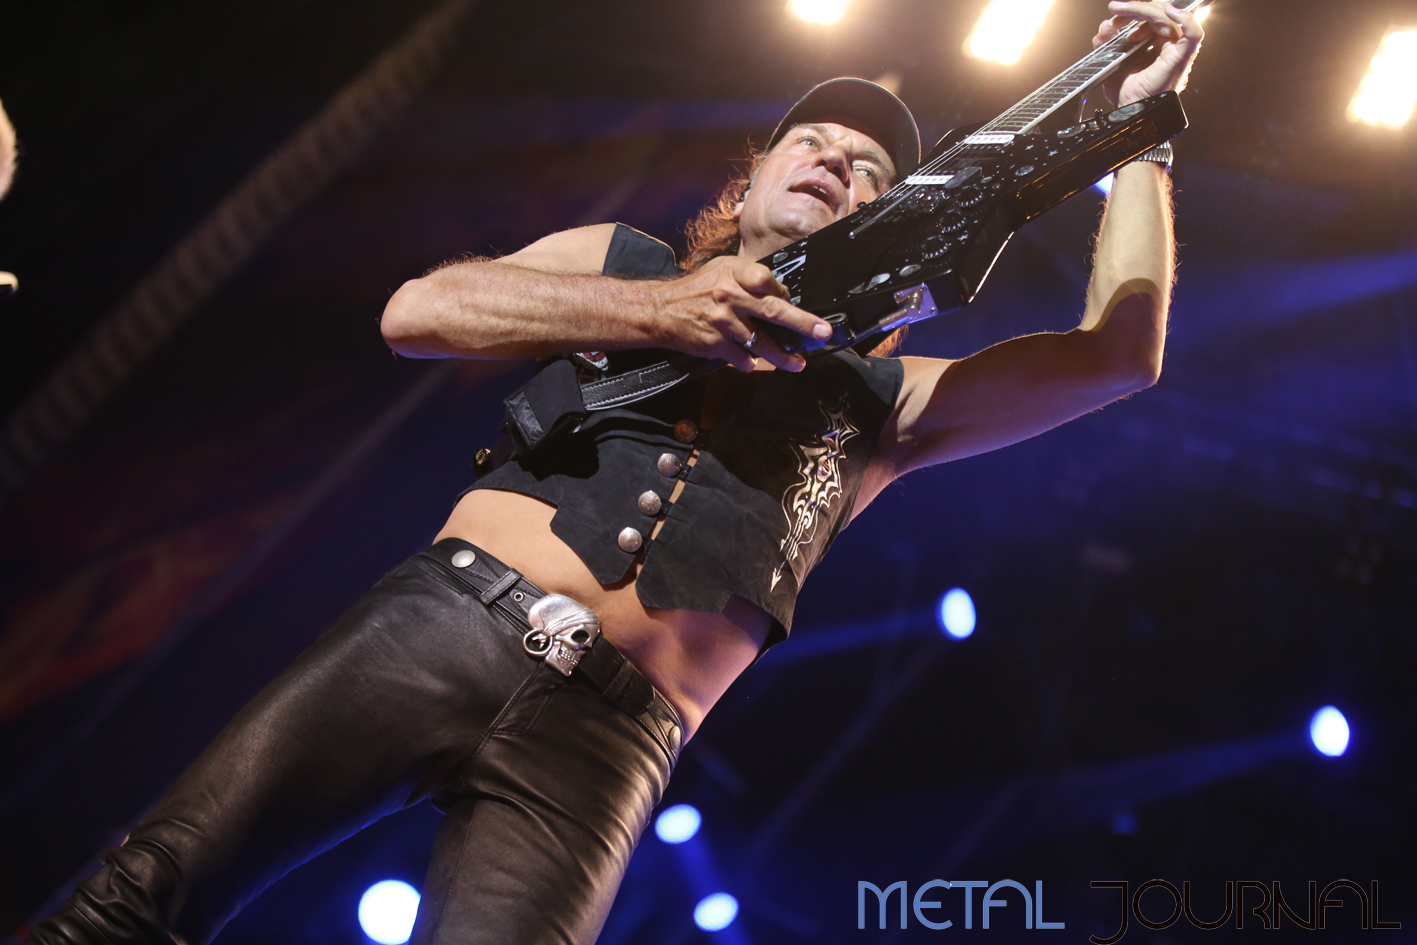 scorpions rock fest 18 - metal journal pic 5